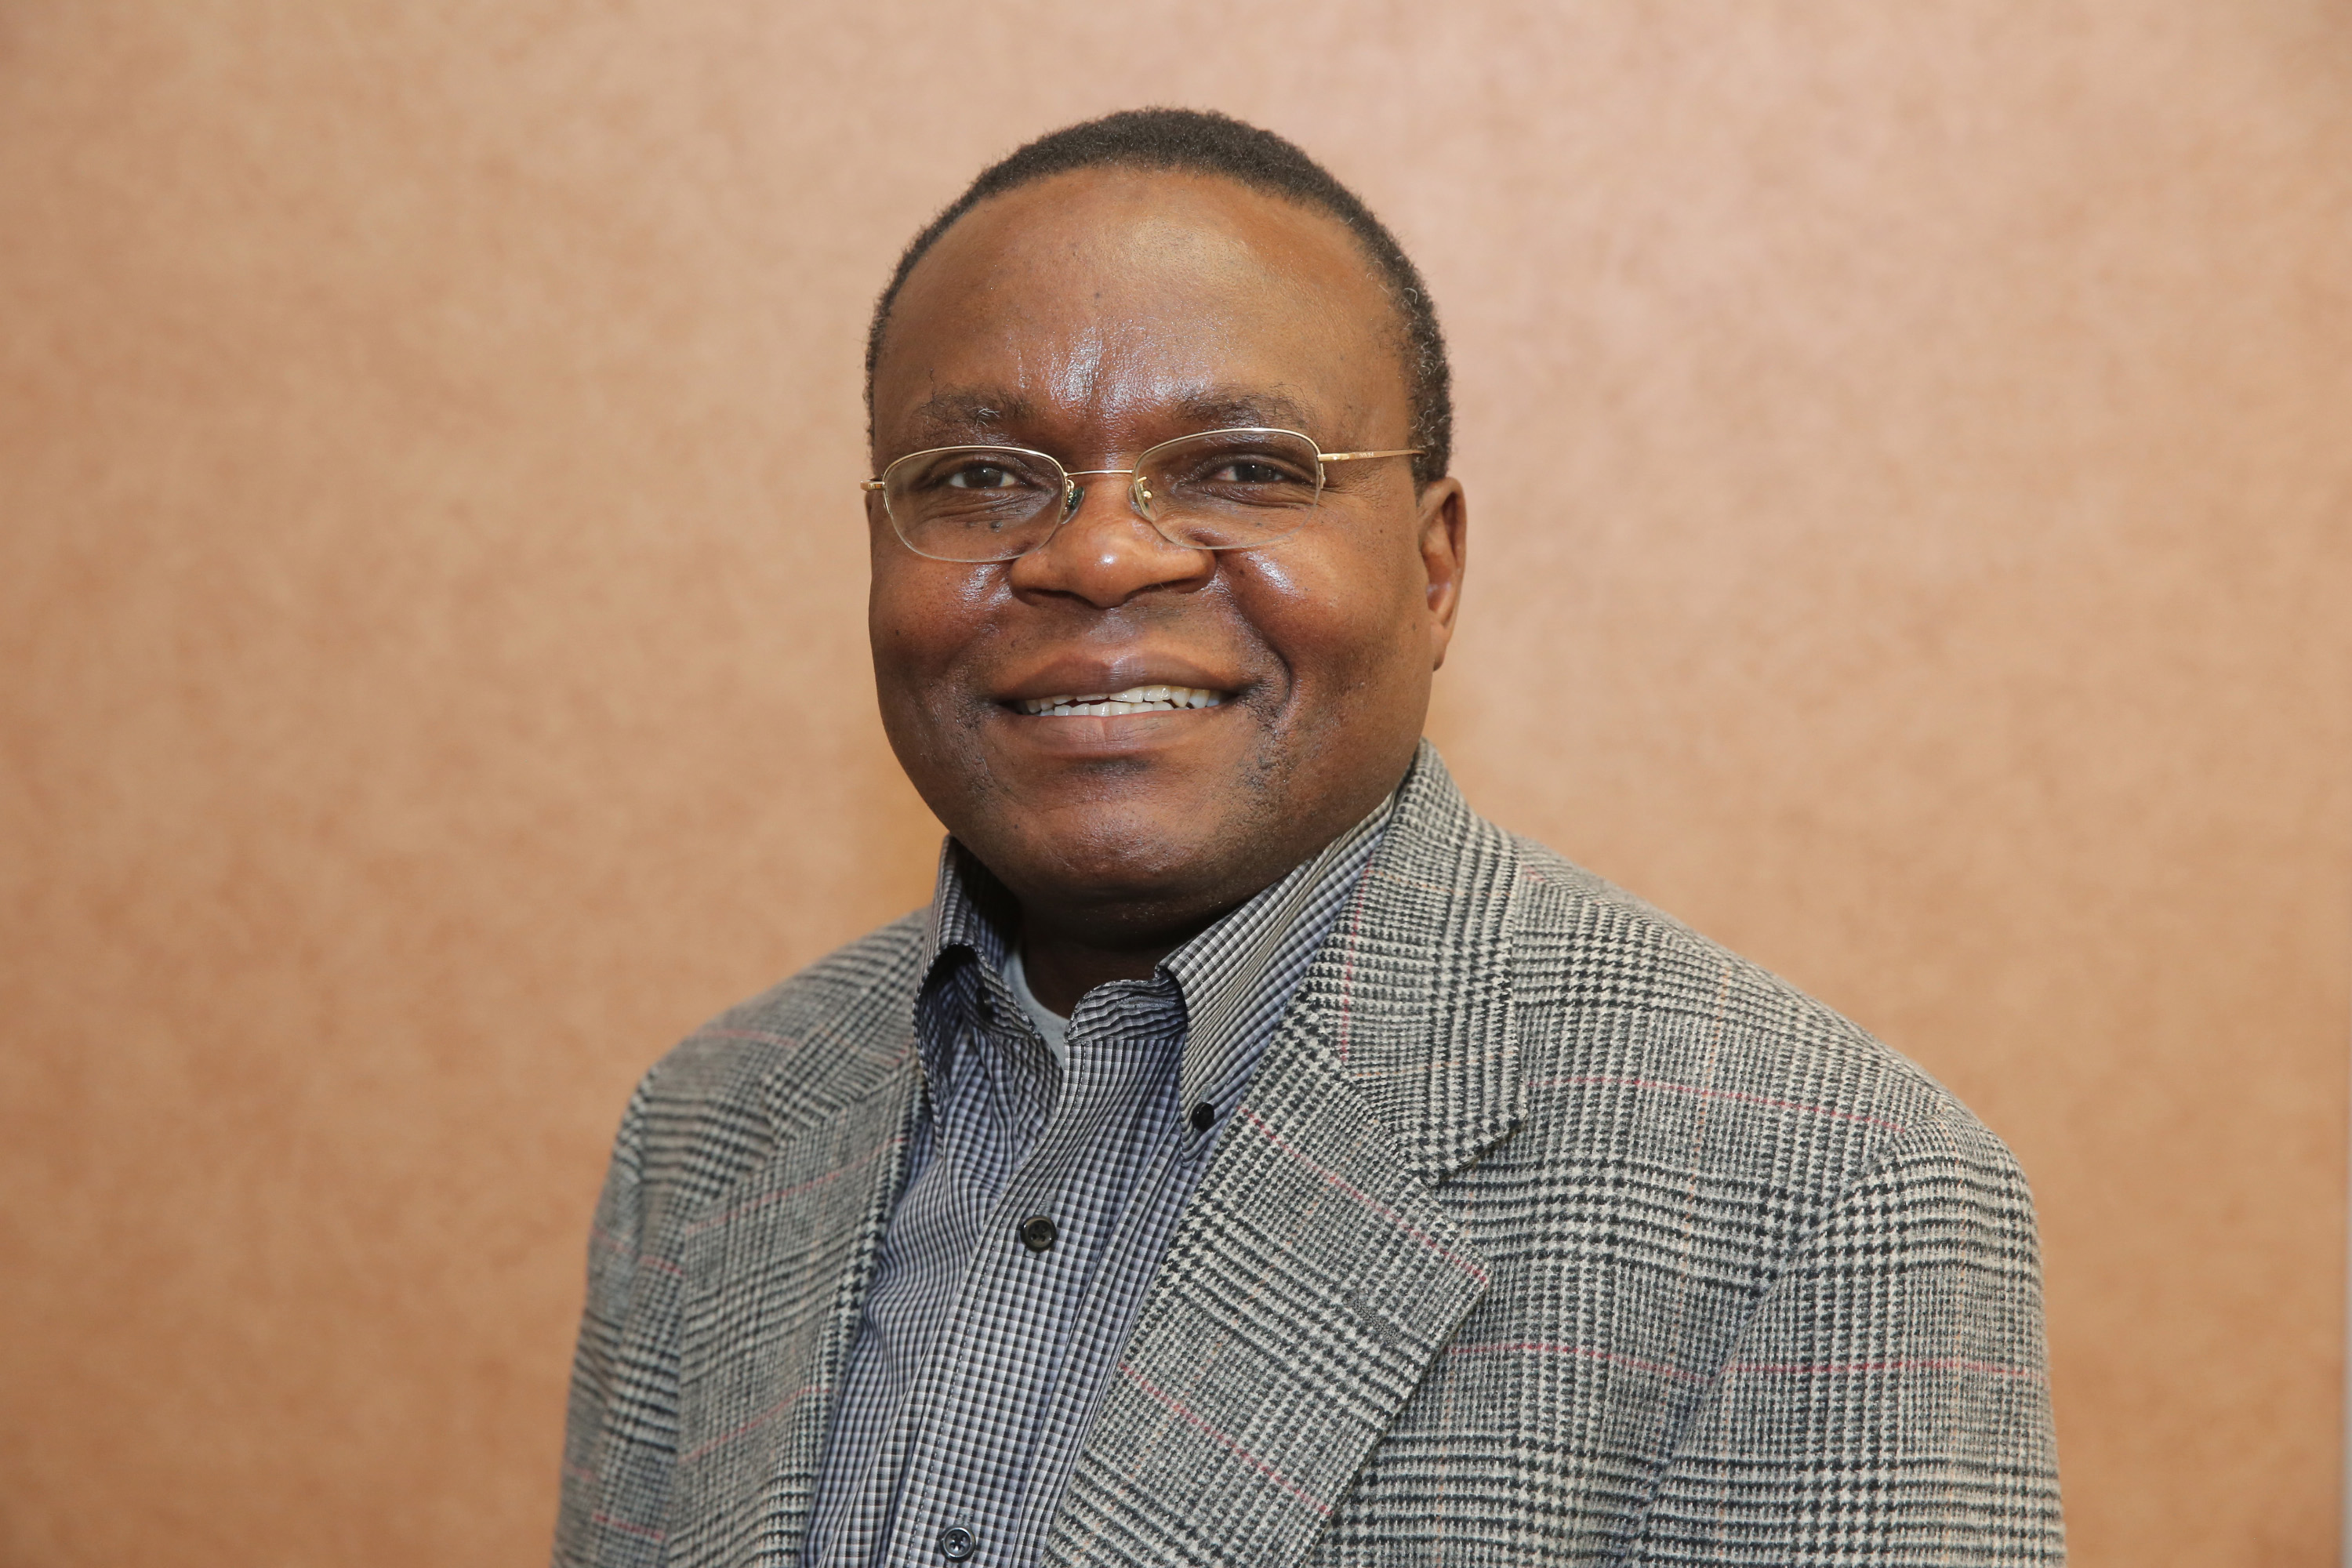 The Rev. Kiboko I. Kiboko, Vano Kiboko's brother and a district superintendent in the Iowa Conference. Photo by the Rev. Art McClanahan, Iowa Conference